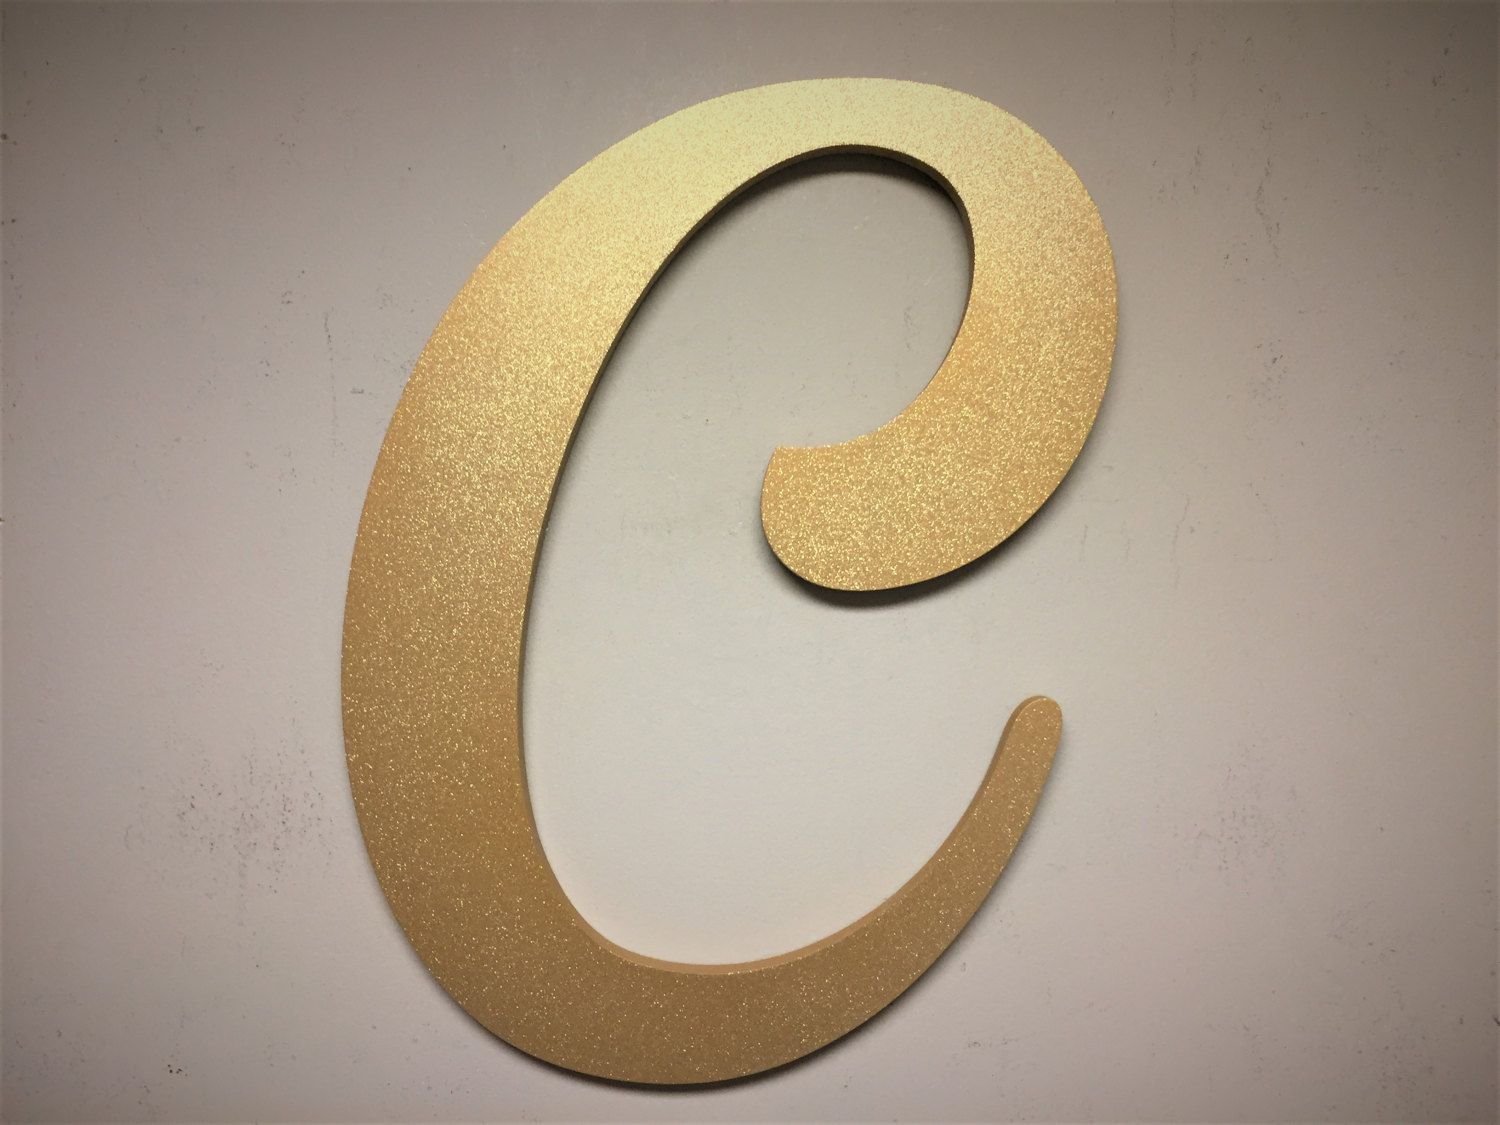 Letter C For Wall Wall Mounted Letter C Gold Sparkle Golden Letter Decor Large